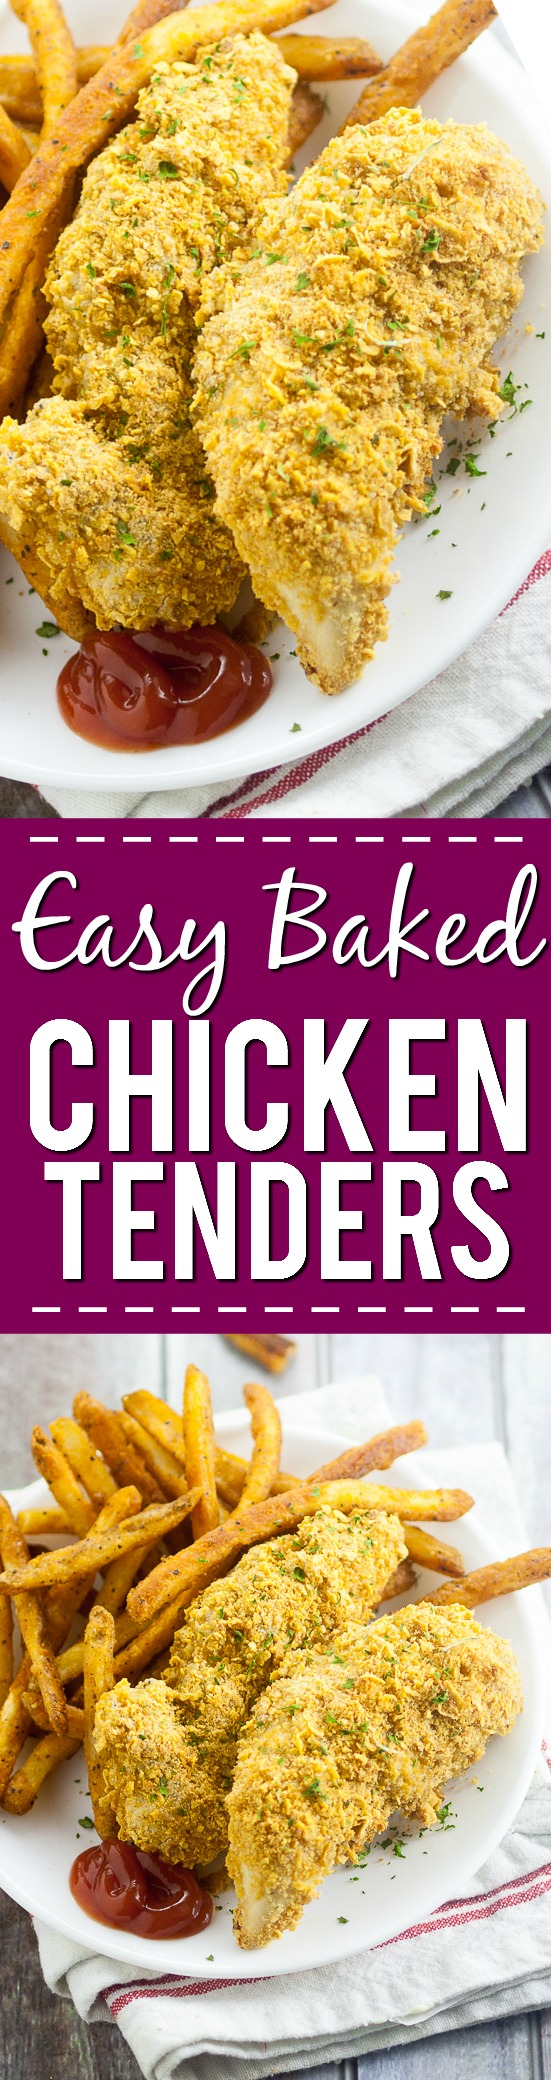 Easy Baked Chicken Tenders Recipe -Use this quick and easy recipe with basic, simple ingredients to make your own homemade Easy Baked Chicken Tenders that both you and the kids will love! Perfect easy food for kids